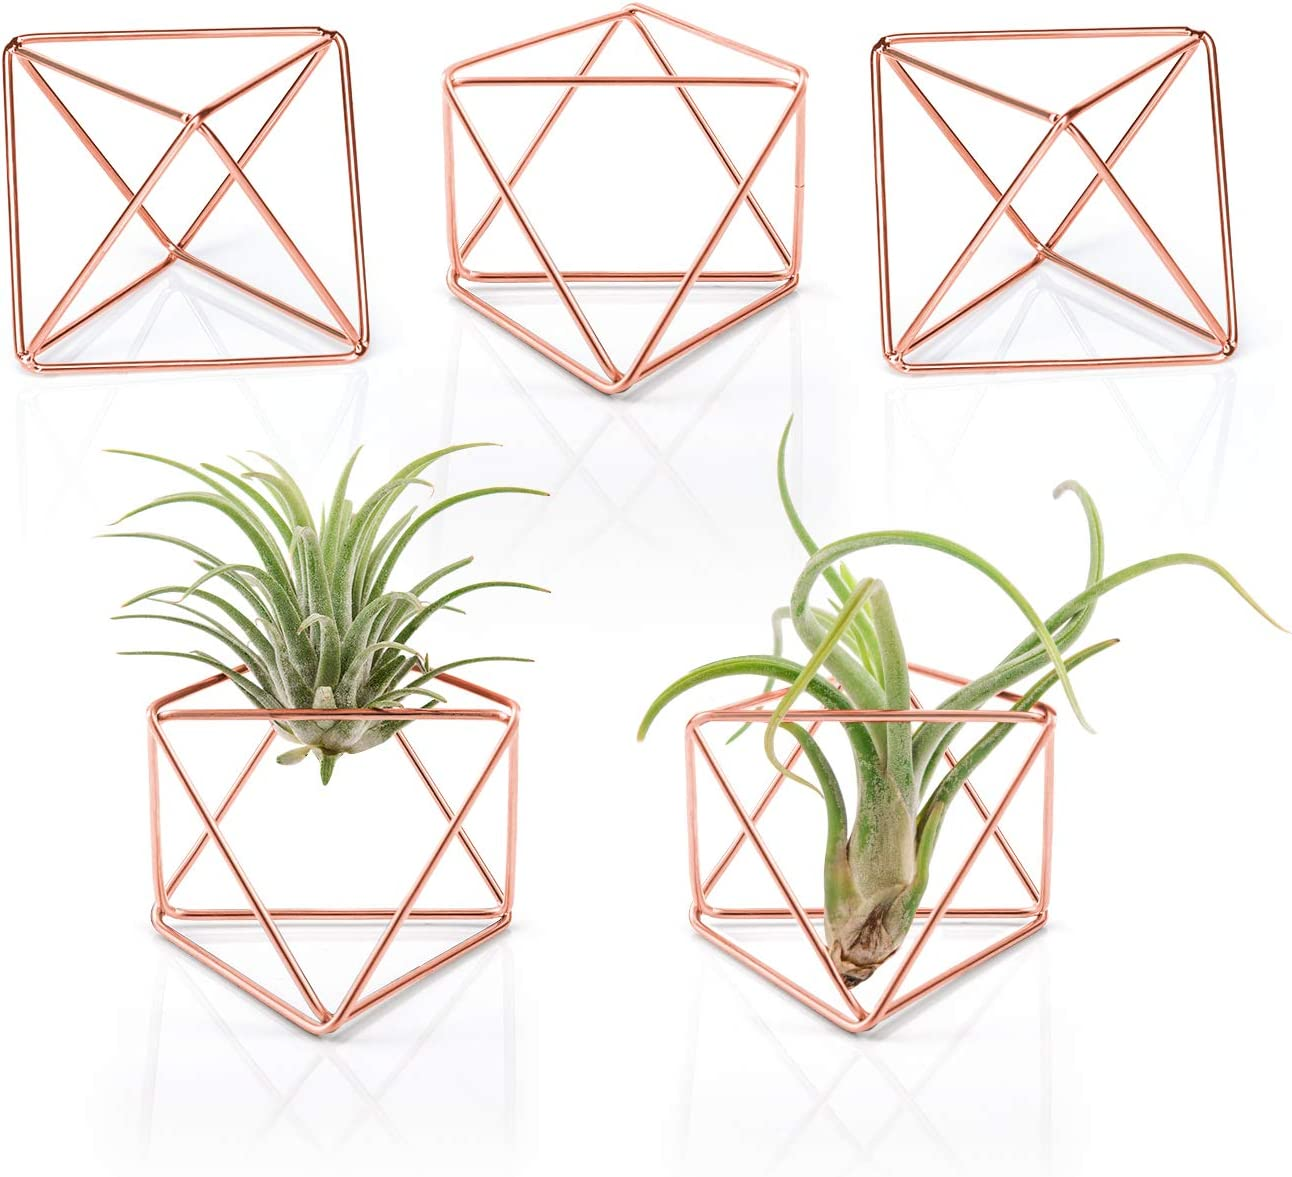 Mkono 5 Packs Air Plant Holder, Same Shape Mini Metal Tabletop Himmeli Decor Modern Geometric Planter Tillandsia Air Fern Display Stand with Each Side 2.6'' Long for Home Office Decor Gift Idea, Pink